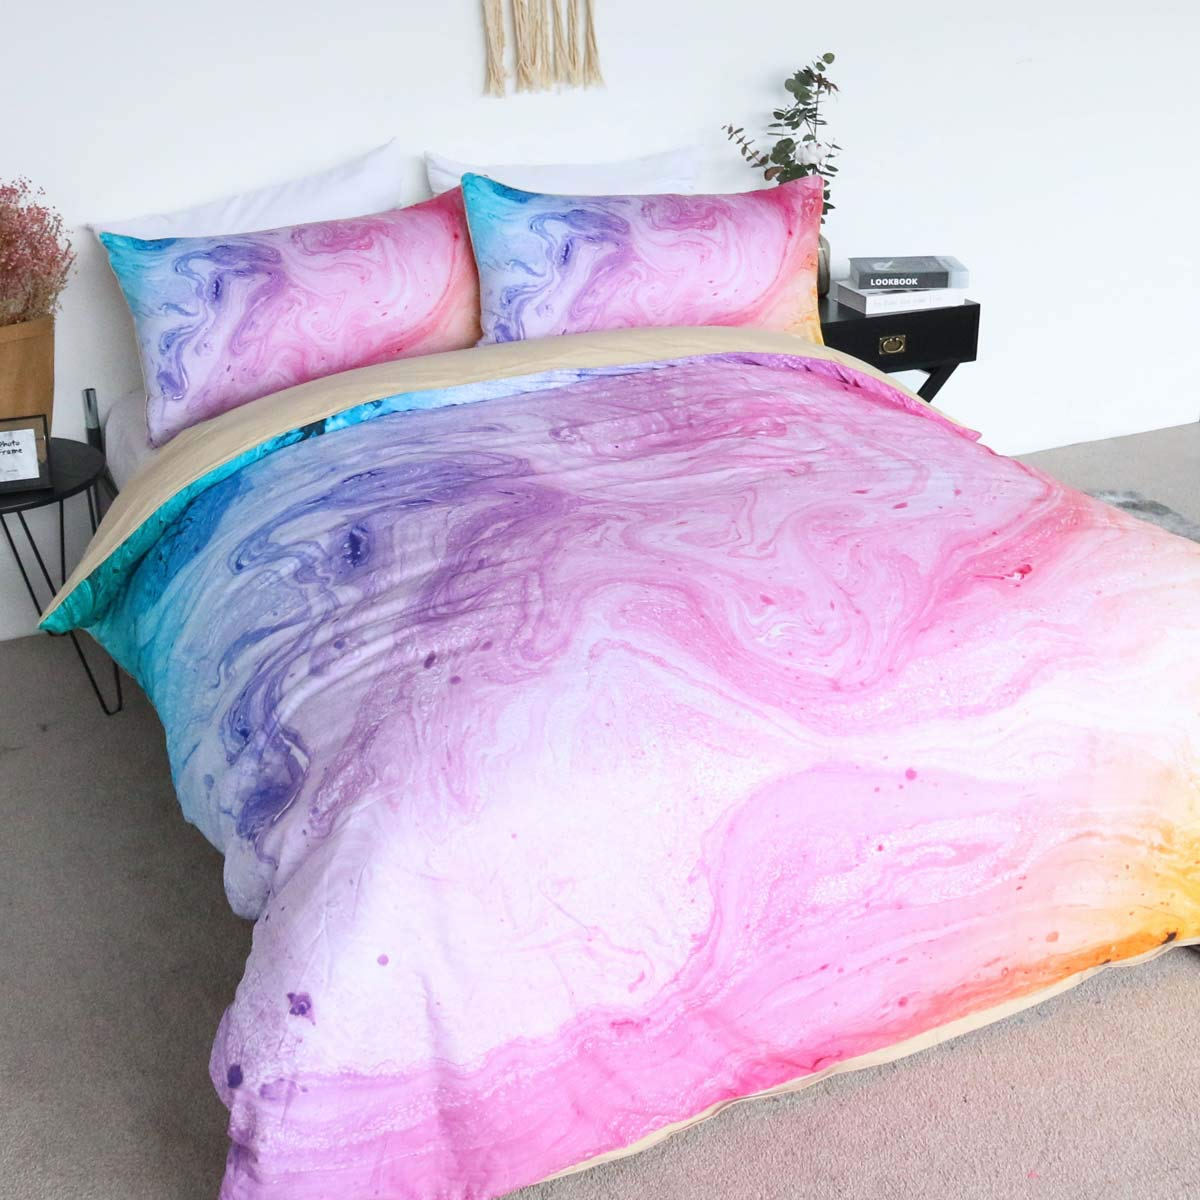 BlessLiving 100% Cotton Marble Duvet Cover Colorful Marble Bedding Pastel Pink Blue and Purple Bedspread 3 Pieces Girls Bed Set (Twin)